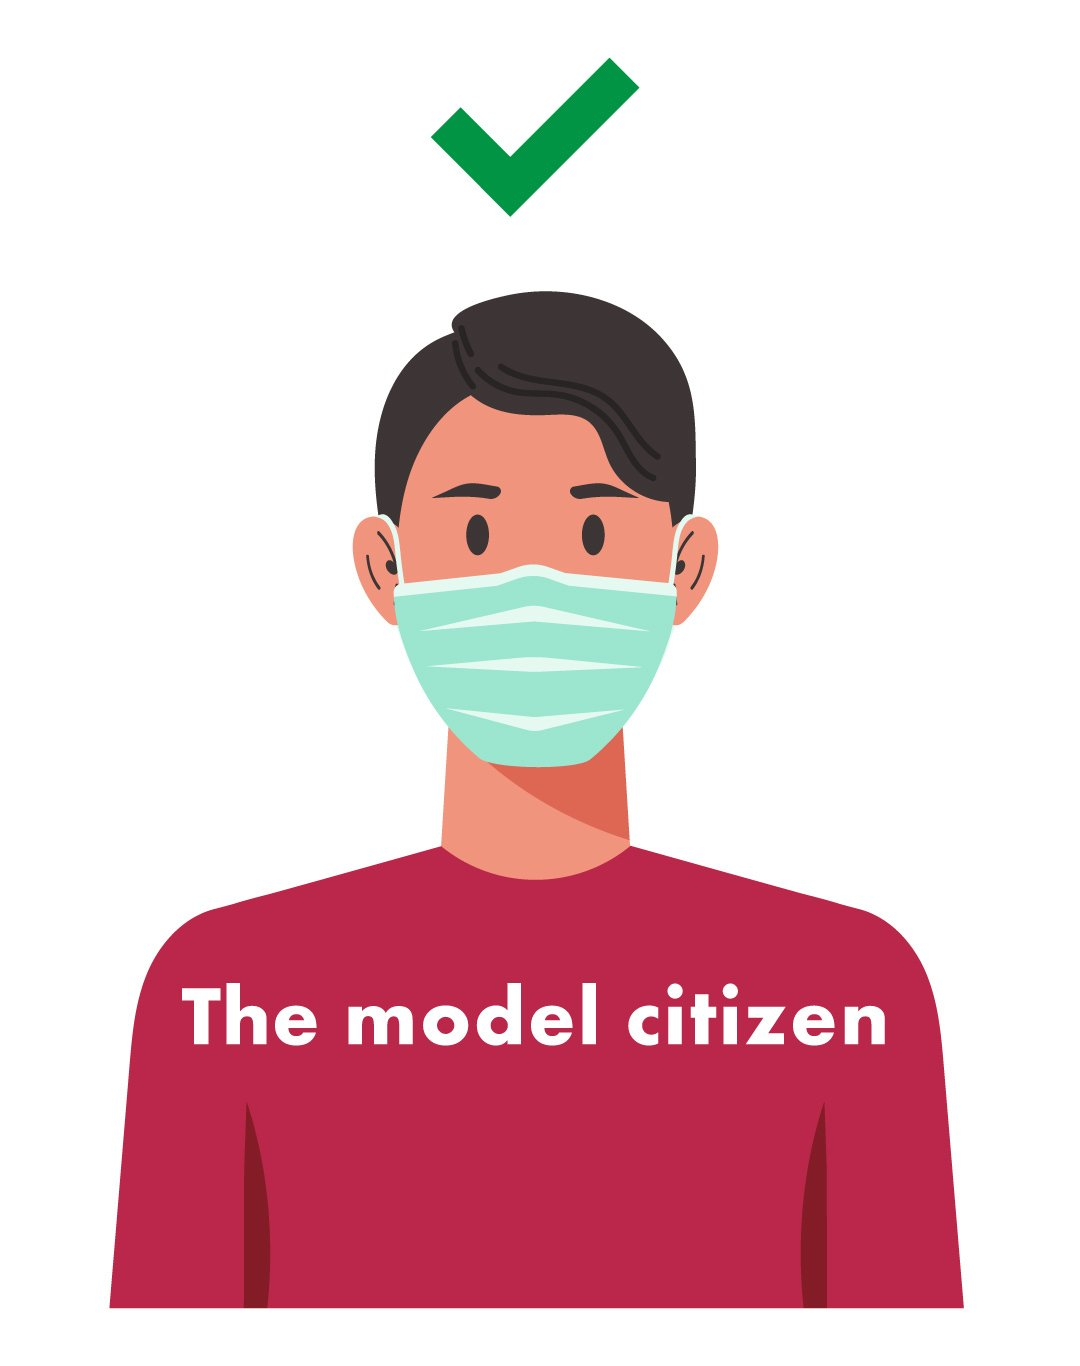 Be like this, be a model citizen.